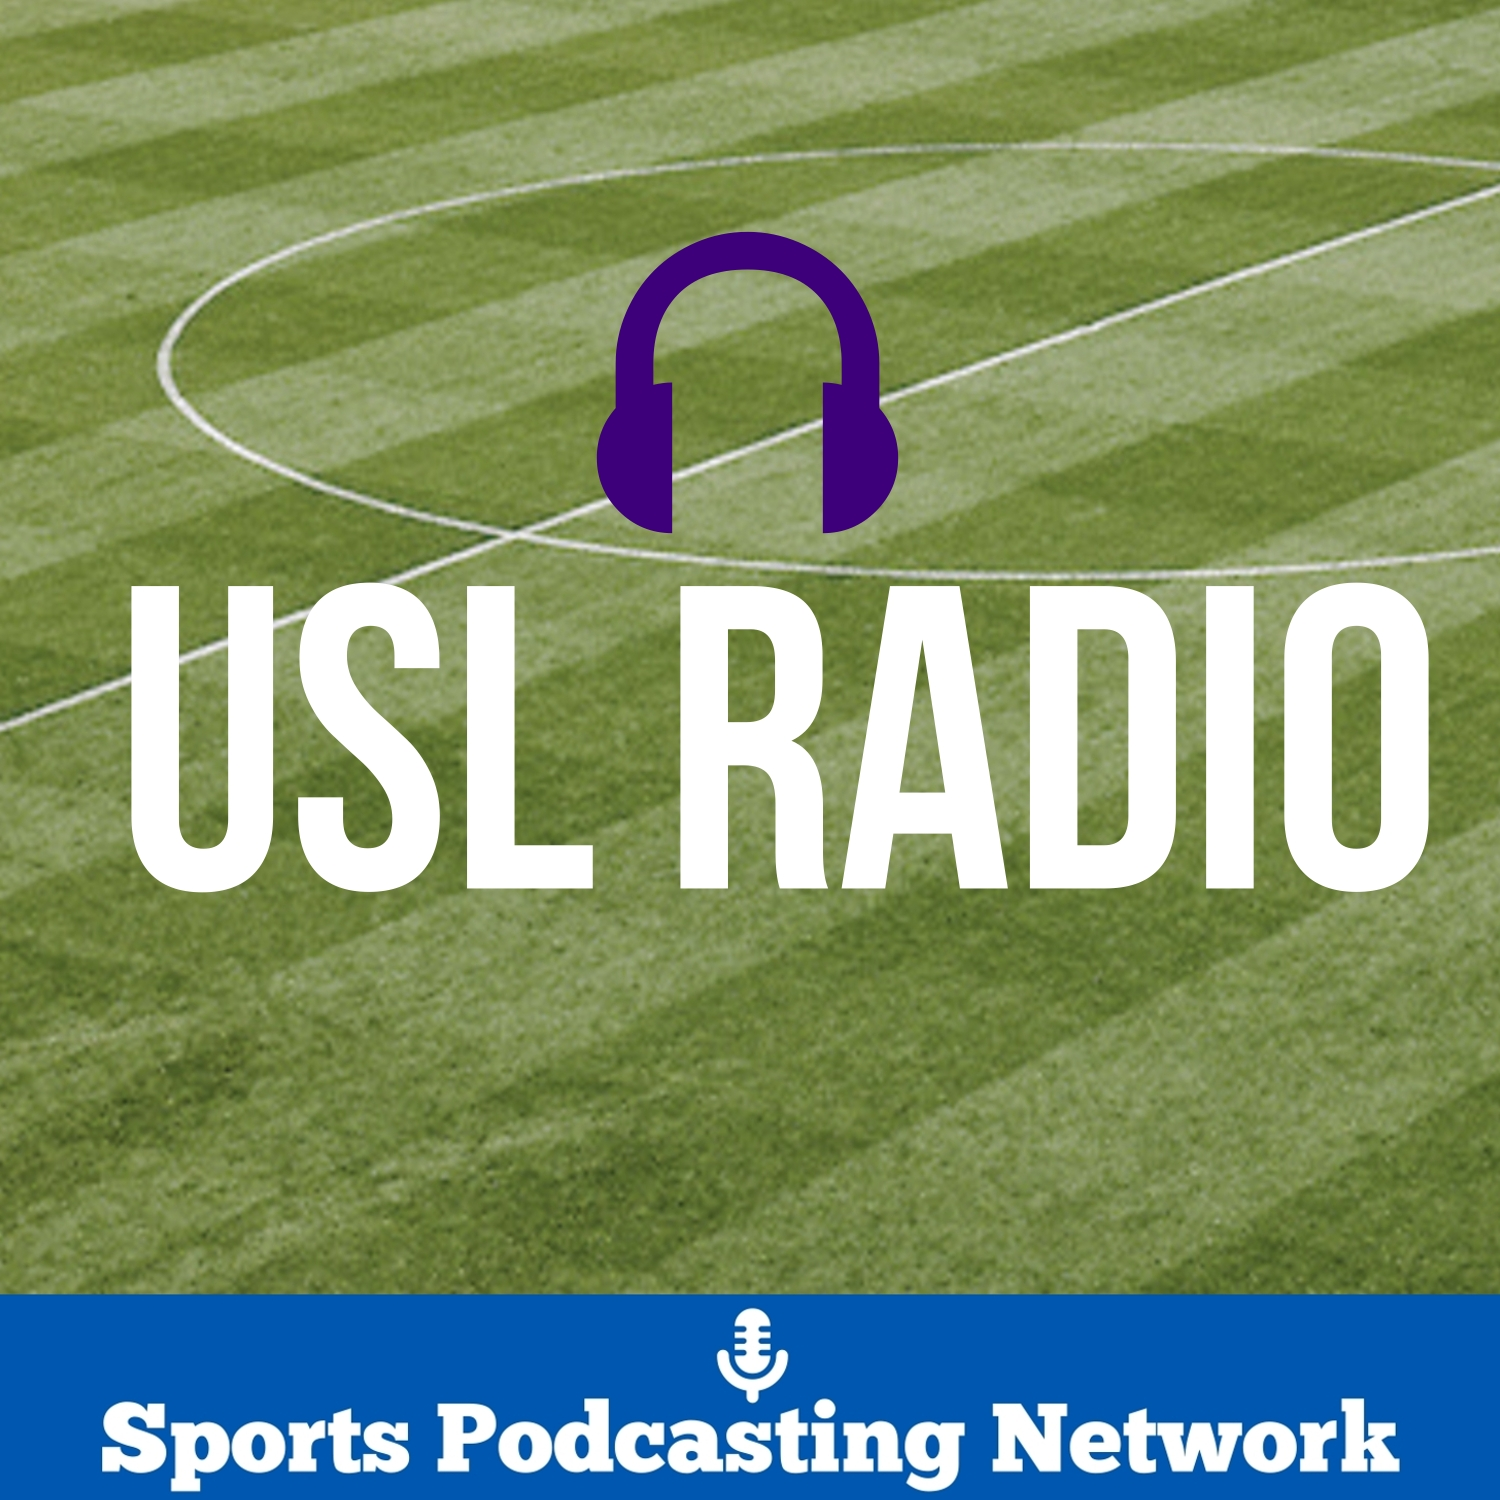 USL Radio – Sports Podcasting Network